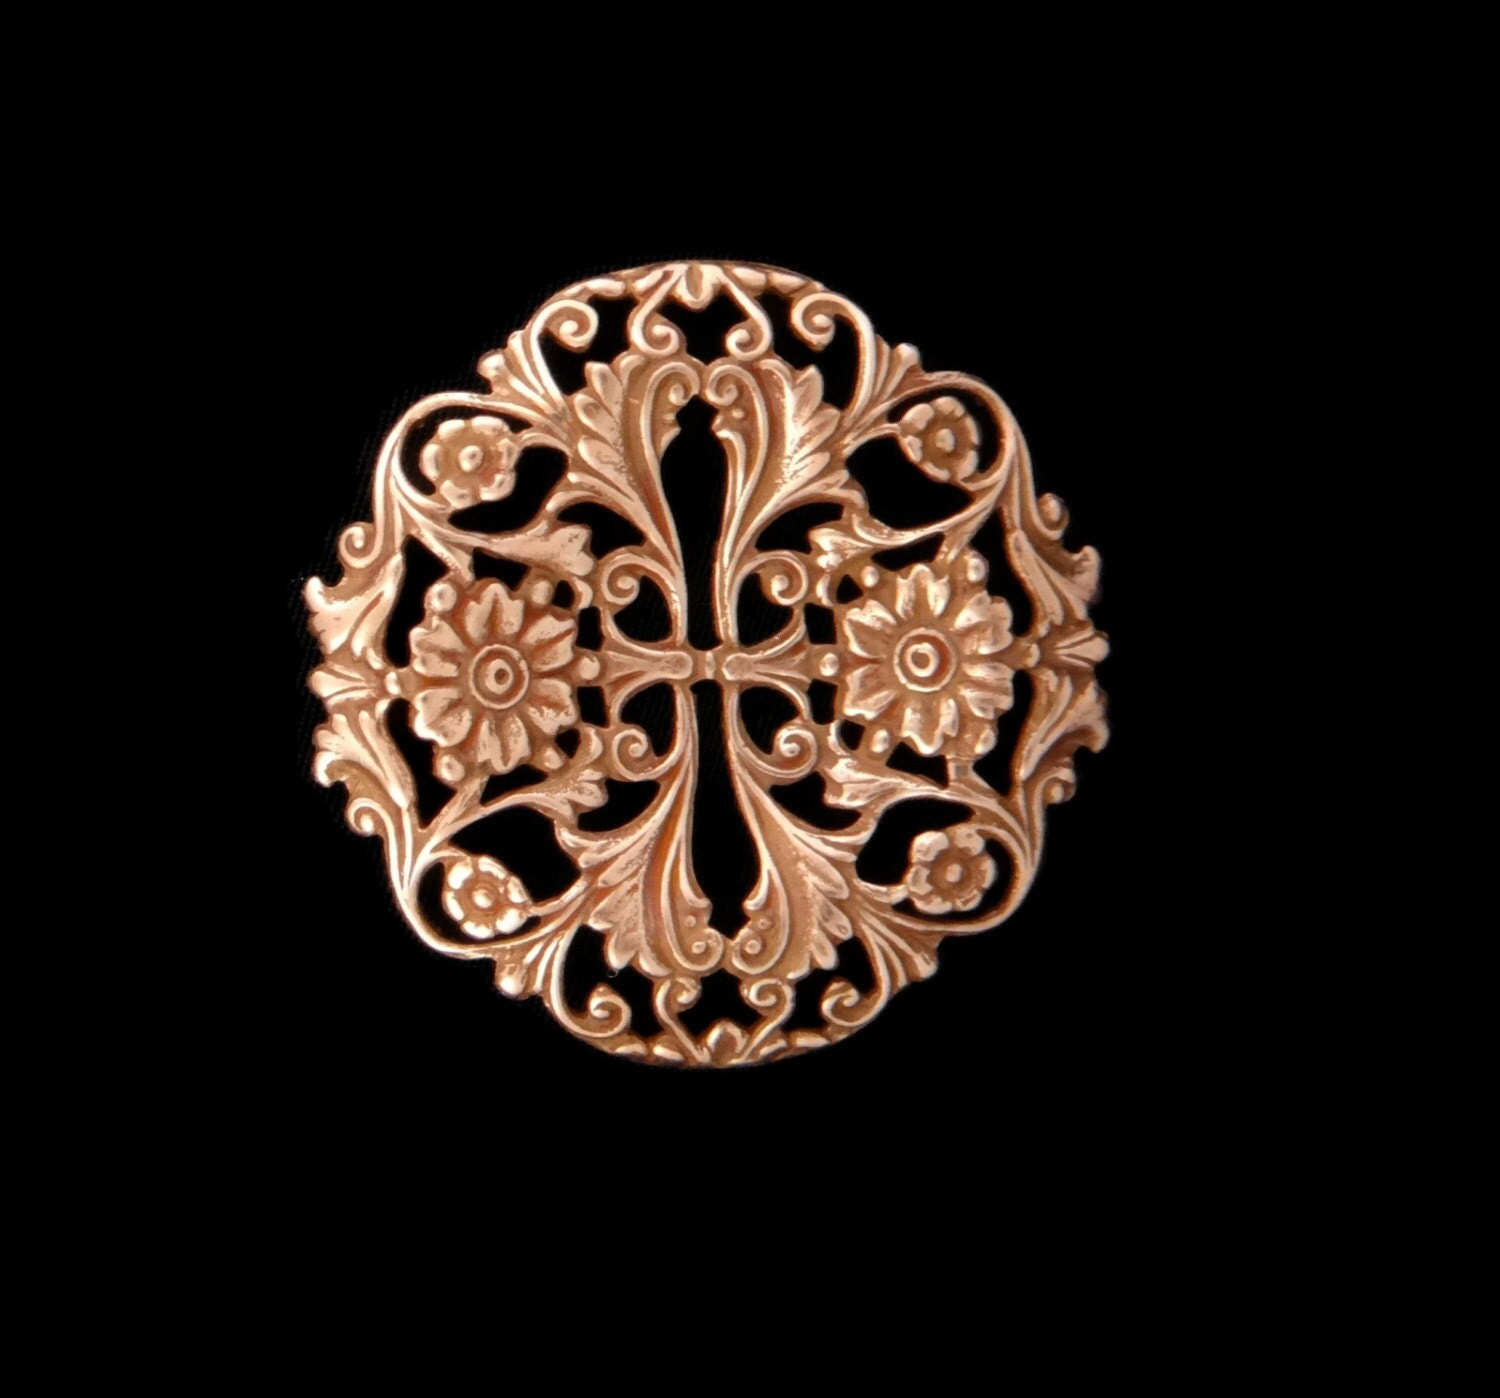 Copper Rose Gold Plated Brass Fancy Victorian Style Dapt Garden Stamping One ( 1 ) Perfect for Steampunk Art Made in the USA Brass